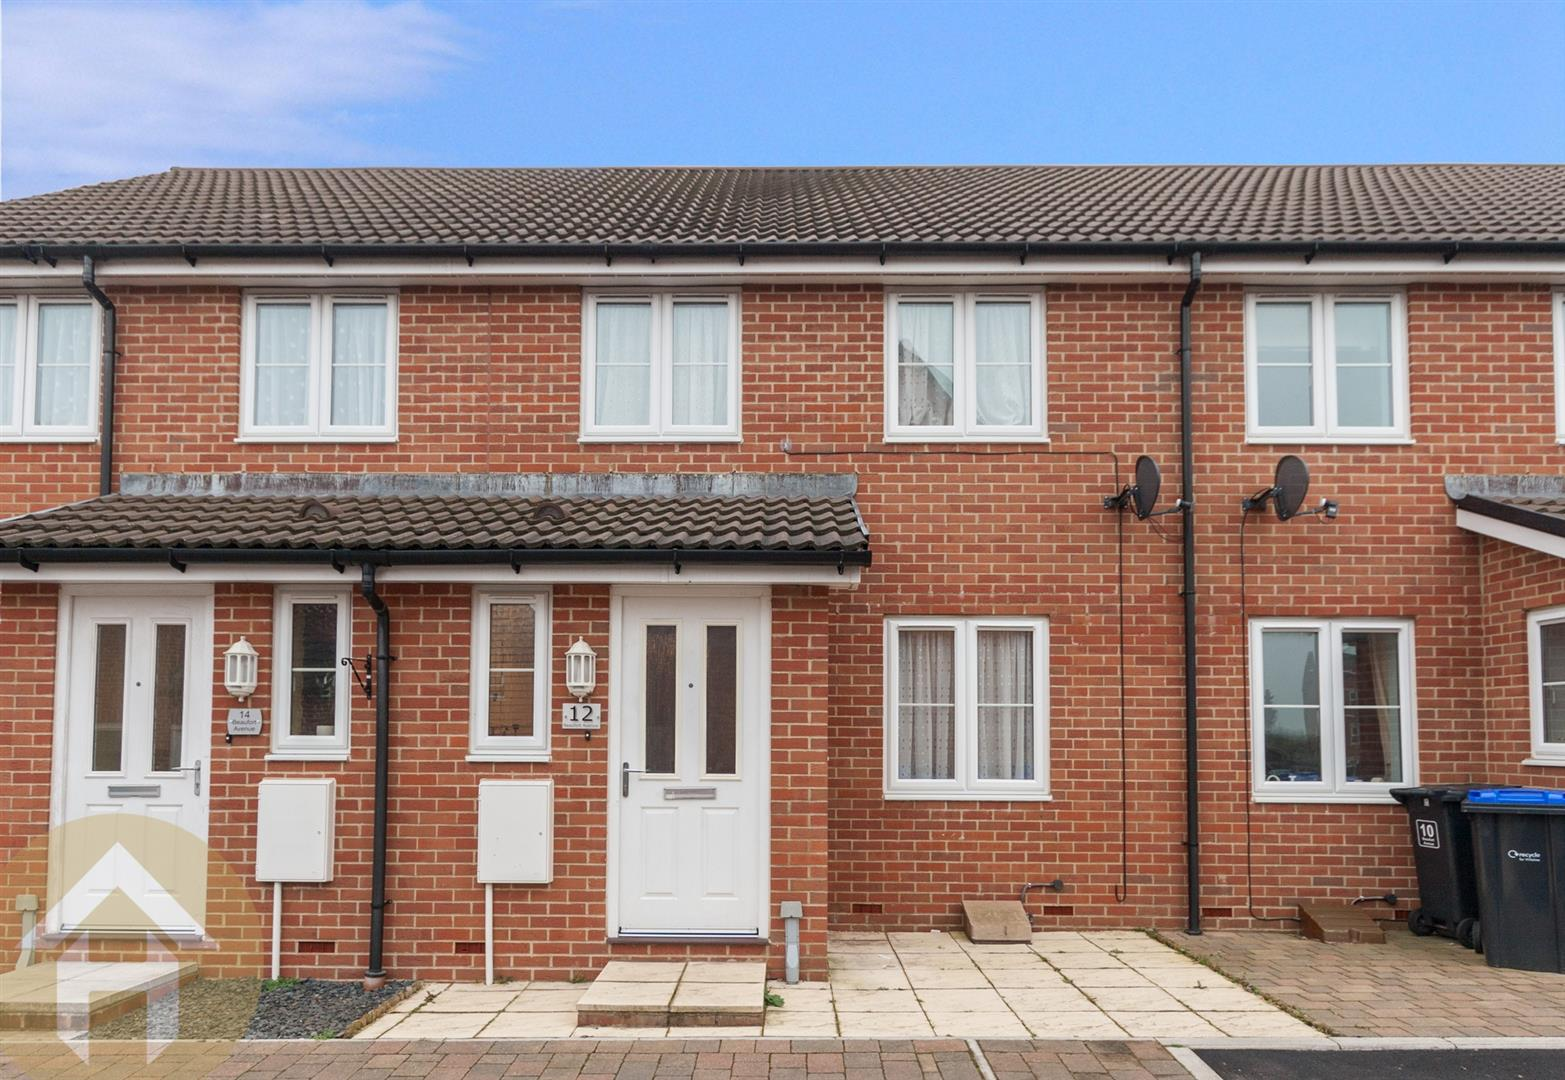 3 Bedrooms Terraced House for sale in Beaufort Avenue, Royal Wootton Bassett SN4